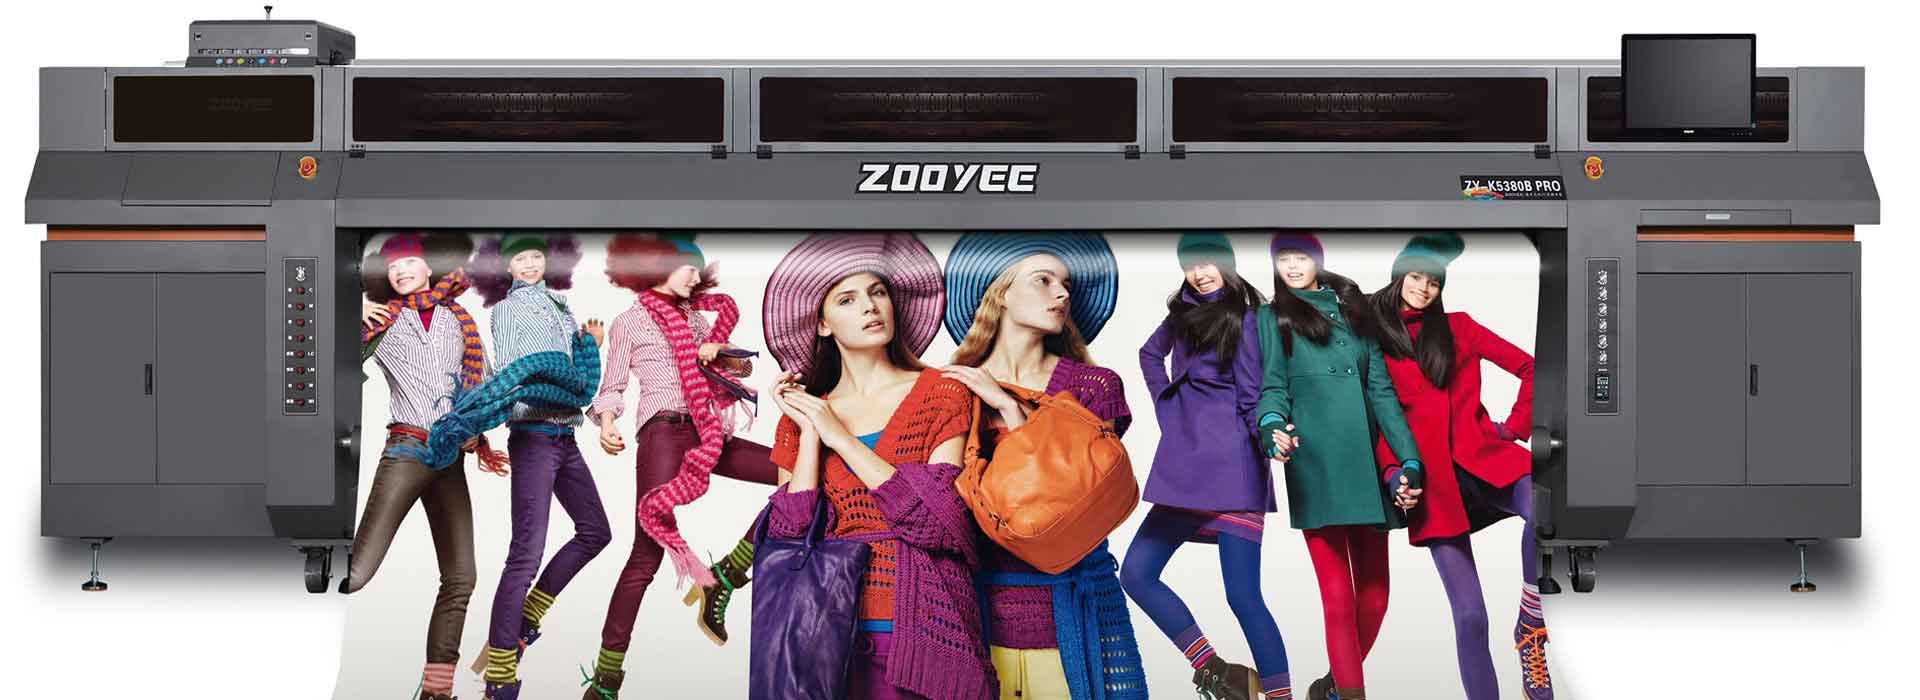 5M width Uv Printer , konica 1024i, 12-14pcs with 6-7colors (CMYKLcLm+White),75sq.m/hour